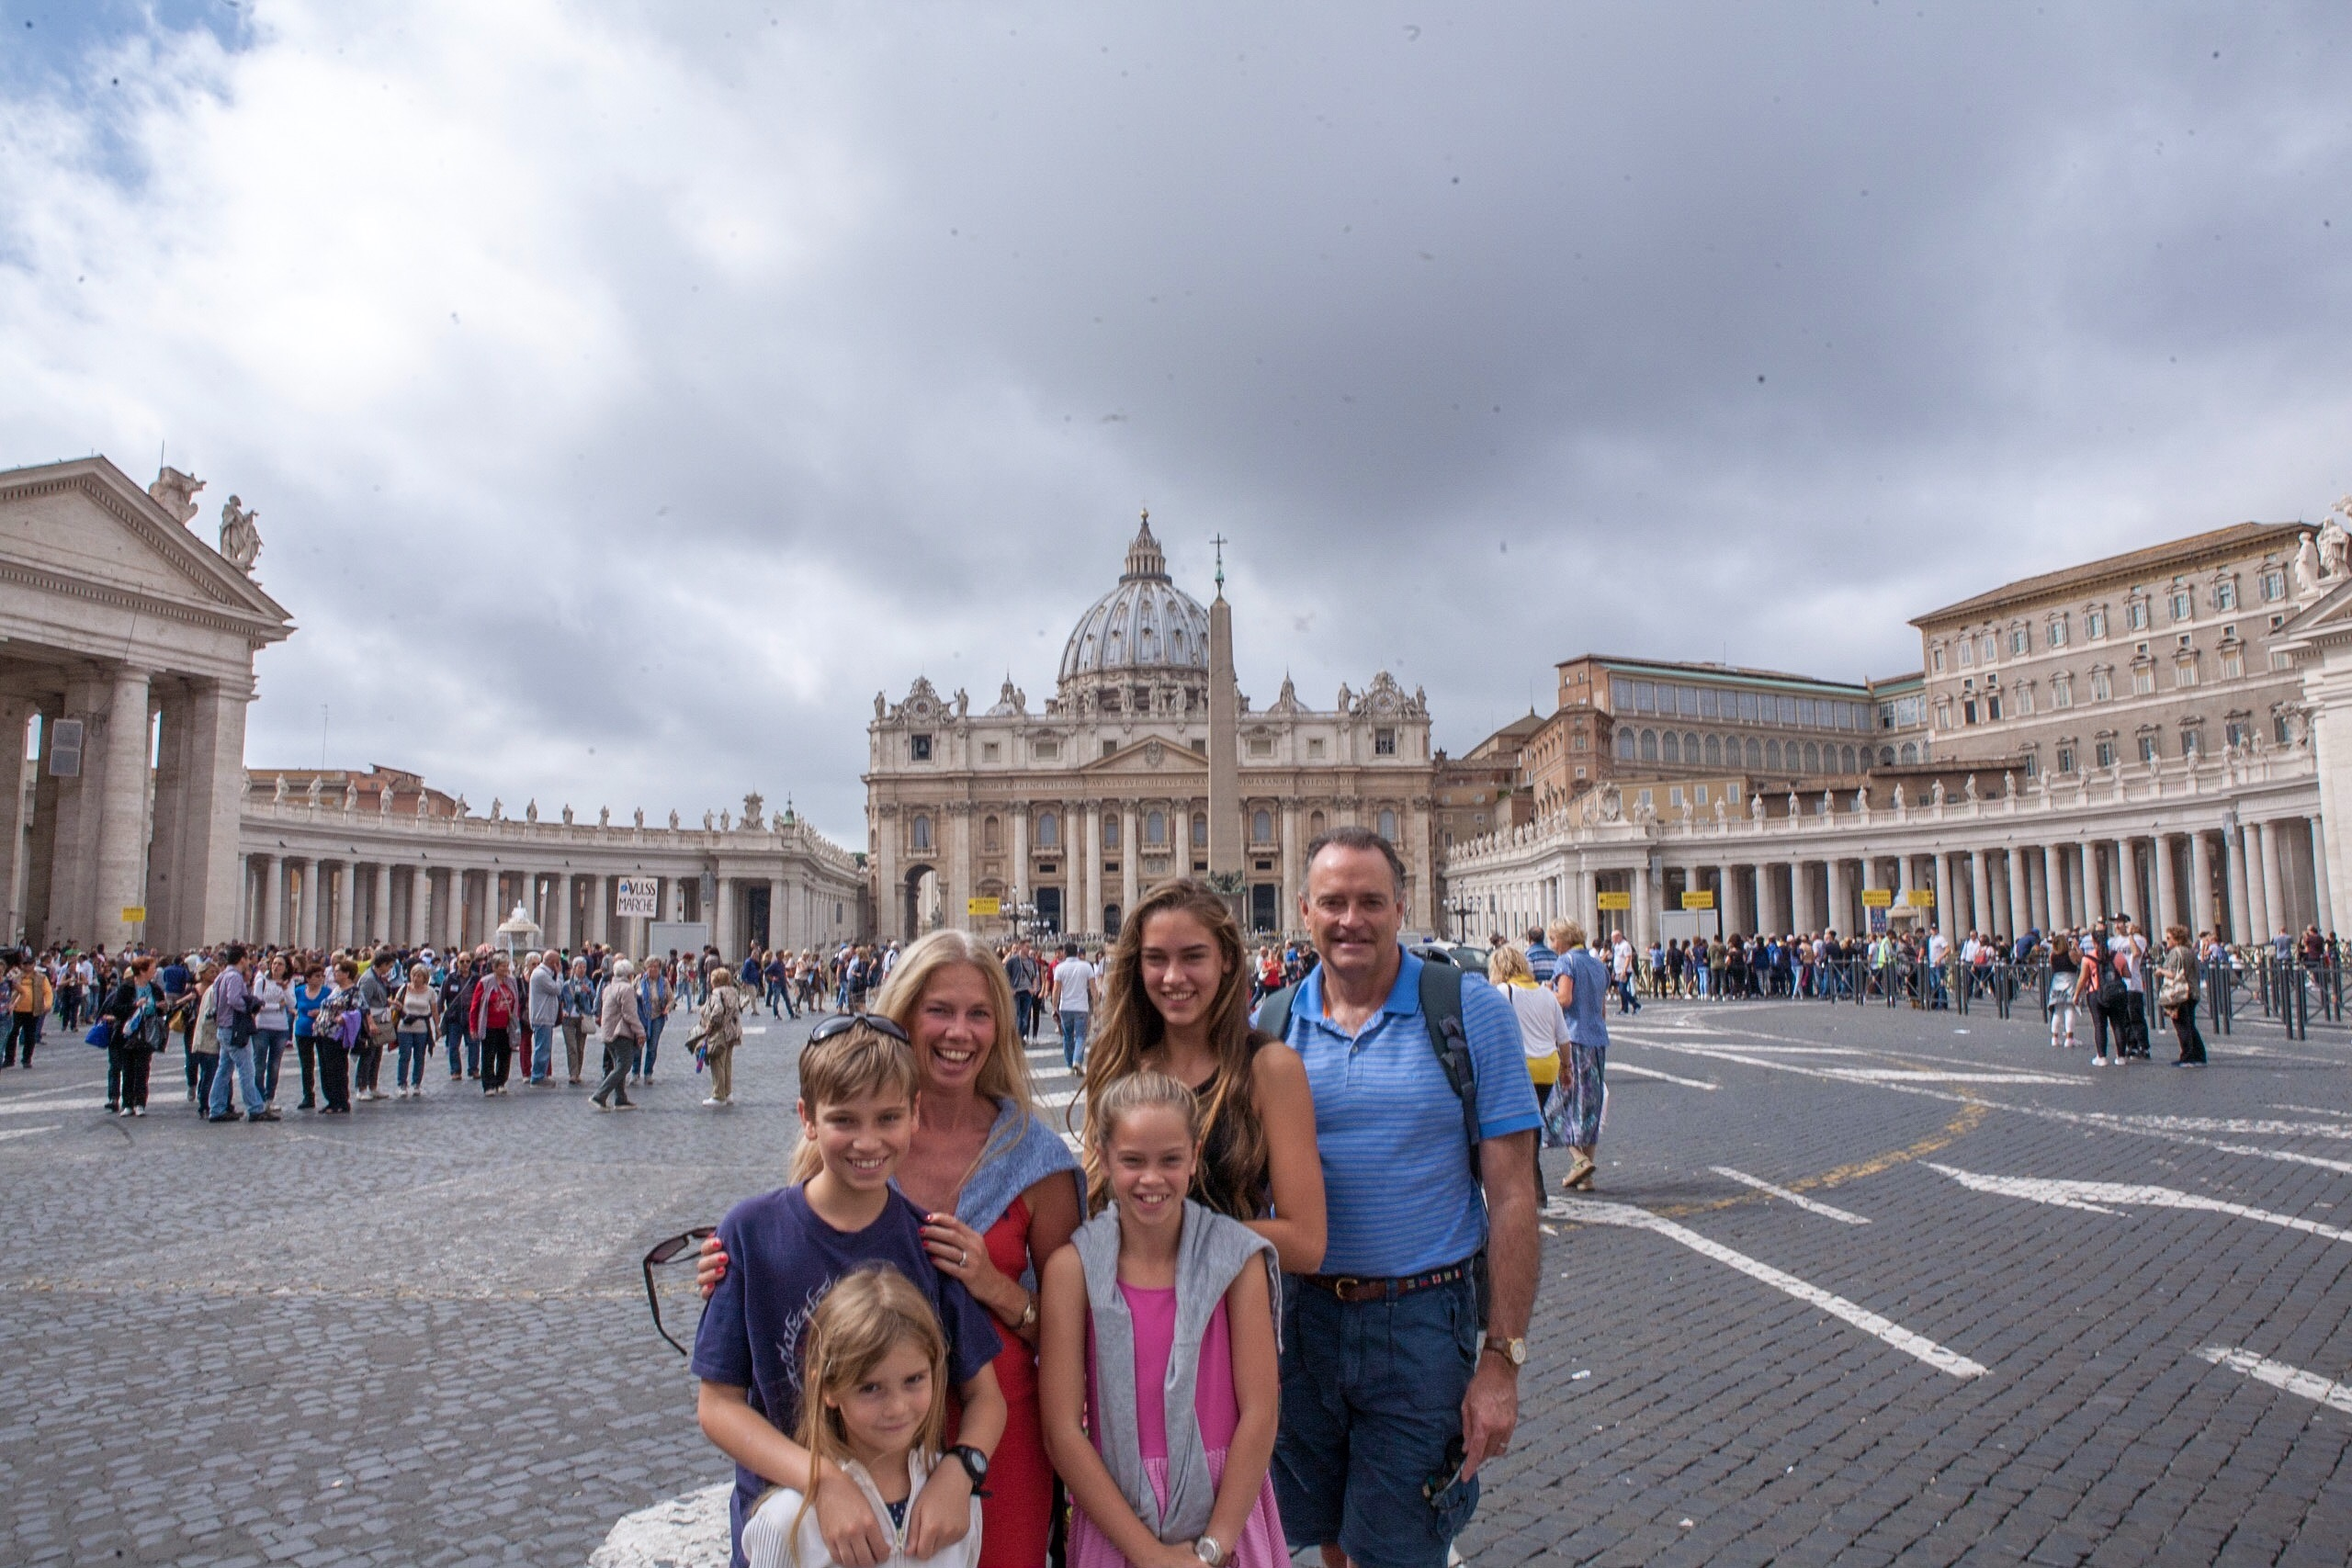 In St Peter's Square with the Vatican behind us